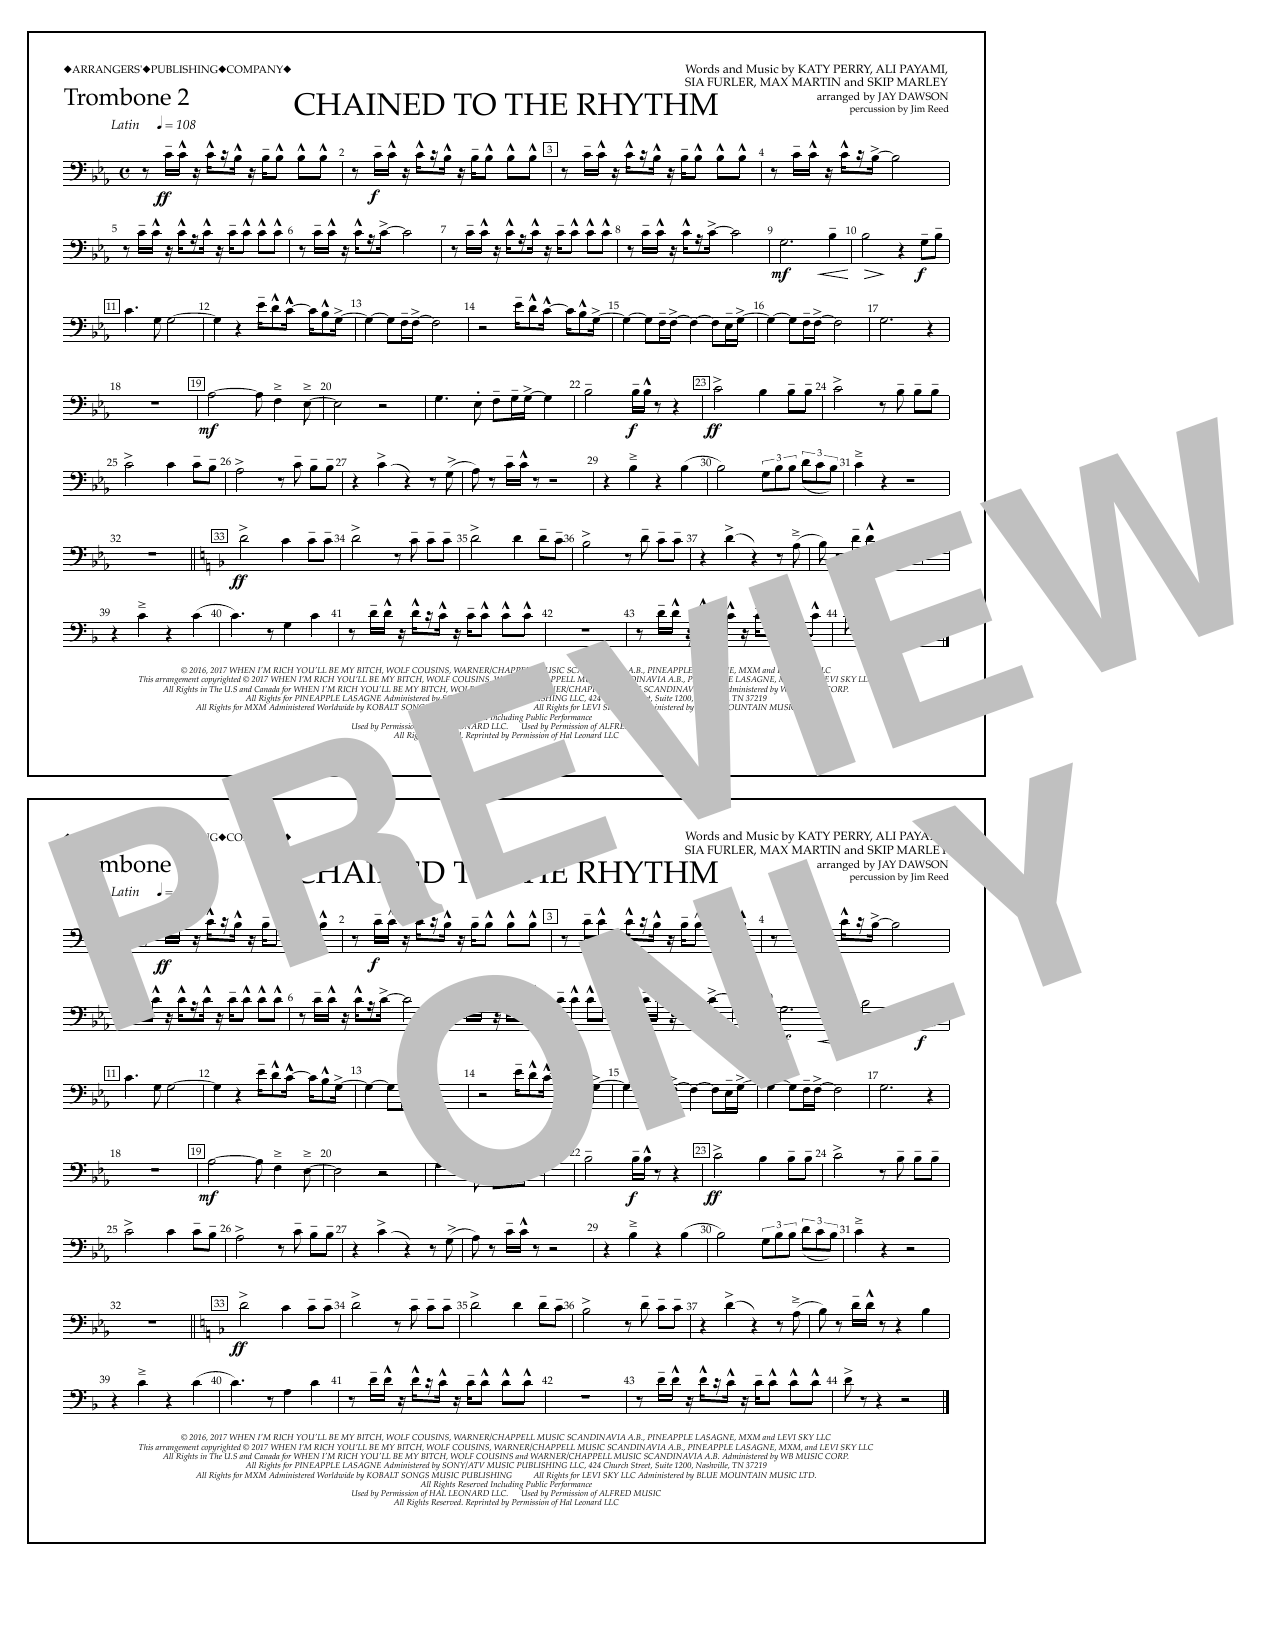 Chained to the Rhythm - Trombone 2 Sheet Music